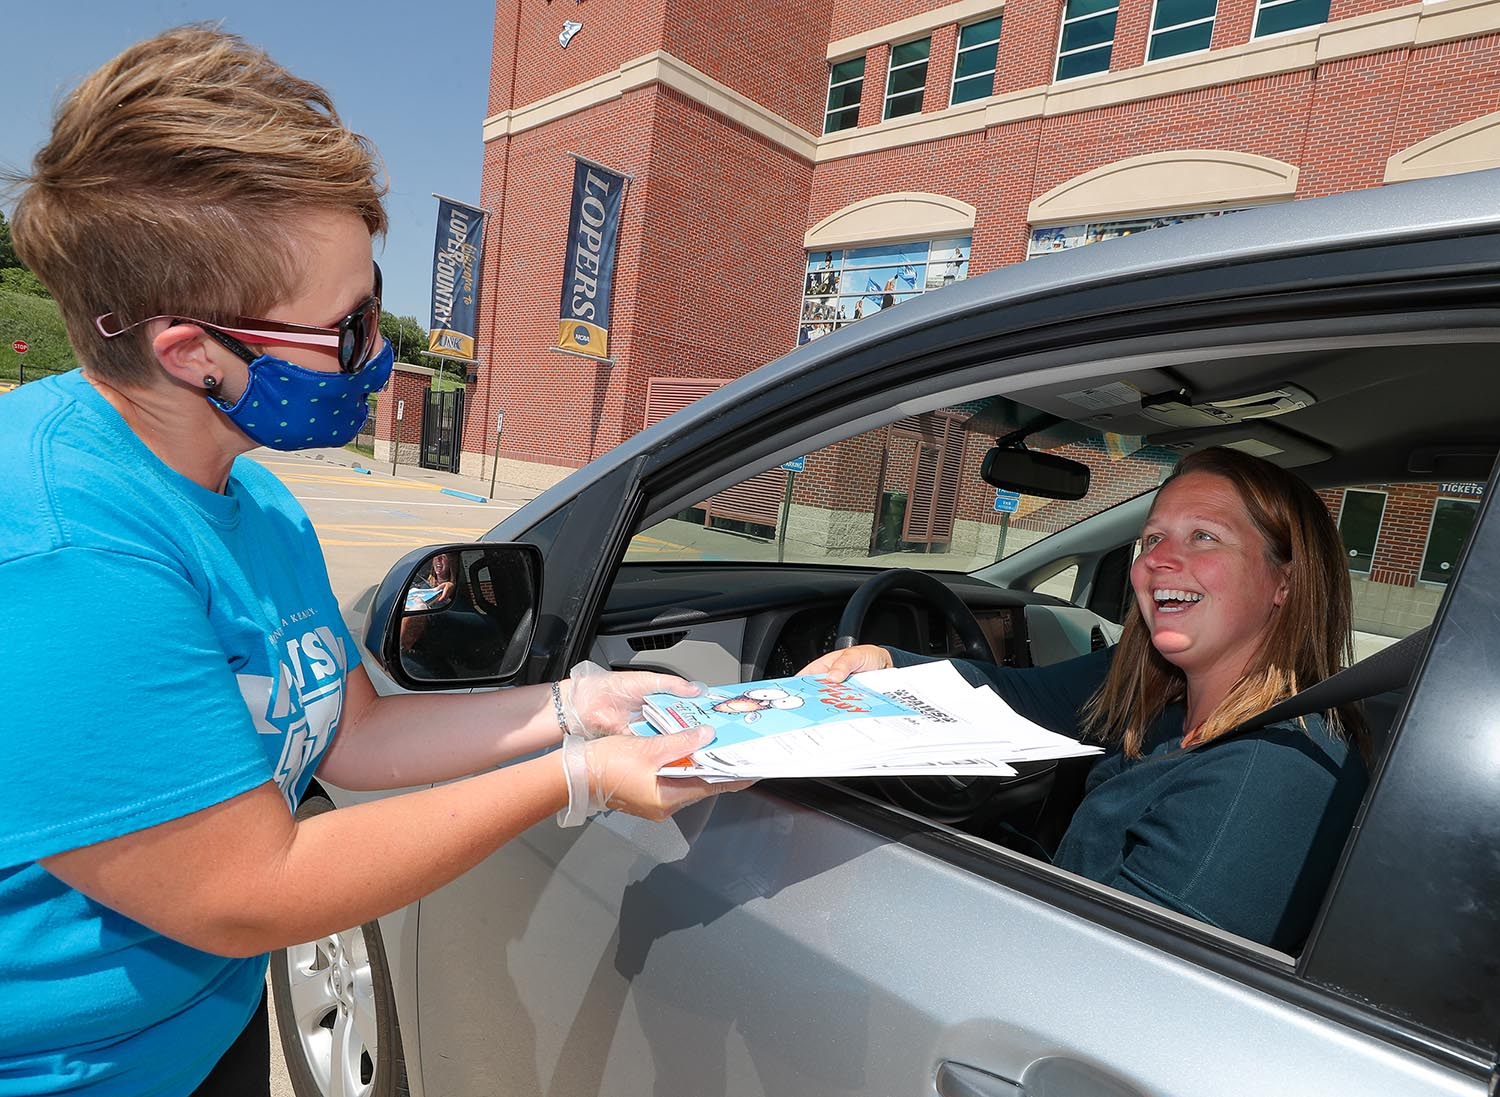 PAWS University director Amy Nebesniak, left, hands educational materials to Kearney resident Brooke Ward on Monday afternoon at UNK's Cope Stadium. PAWS University: Home Edition, a UNK summer program, allows area families to access a variety of curriculum-based activities for elementary students through take-home kits distributed each week. (Photos by Corbey R. Dorsey, UNK Communications)